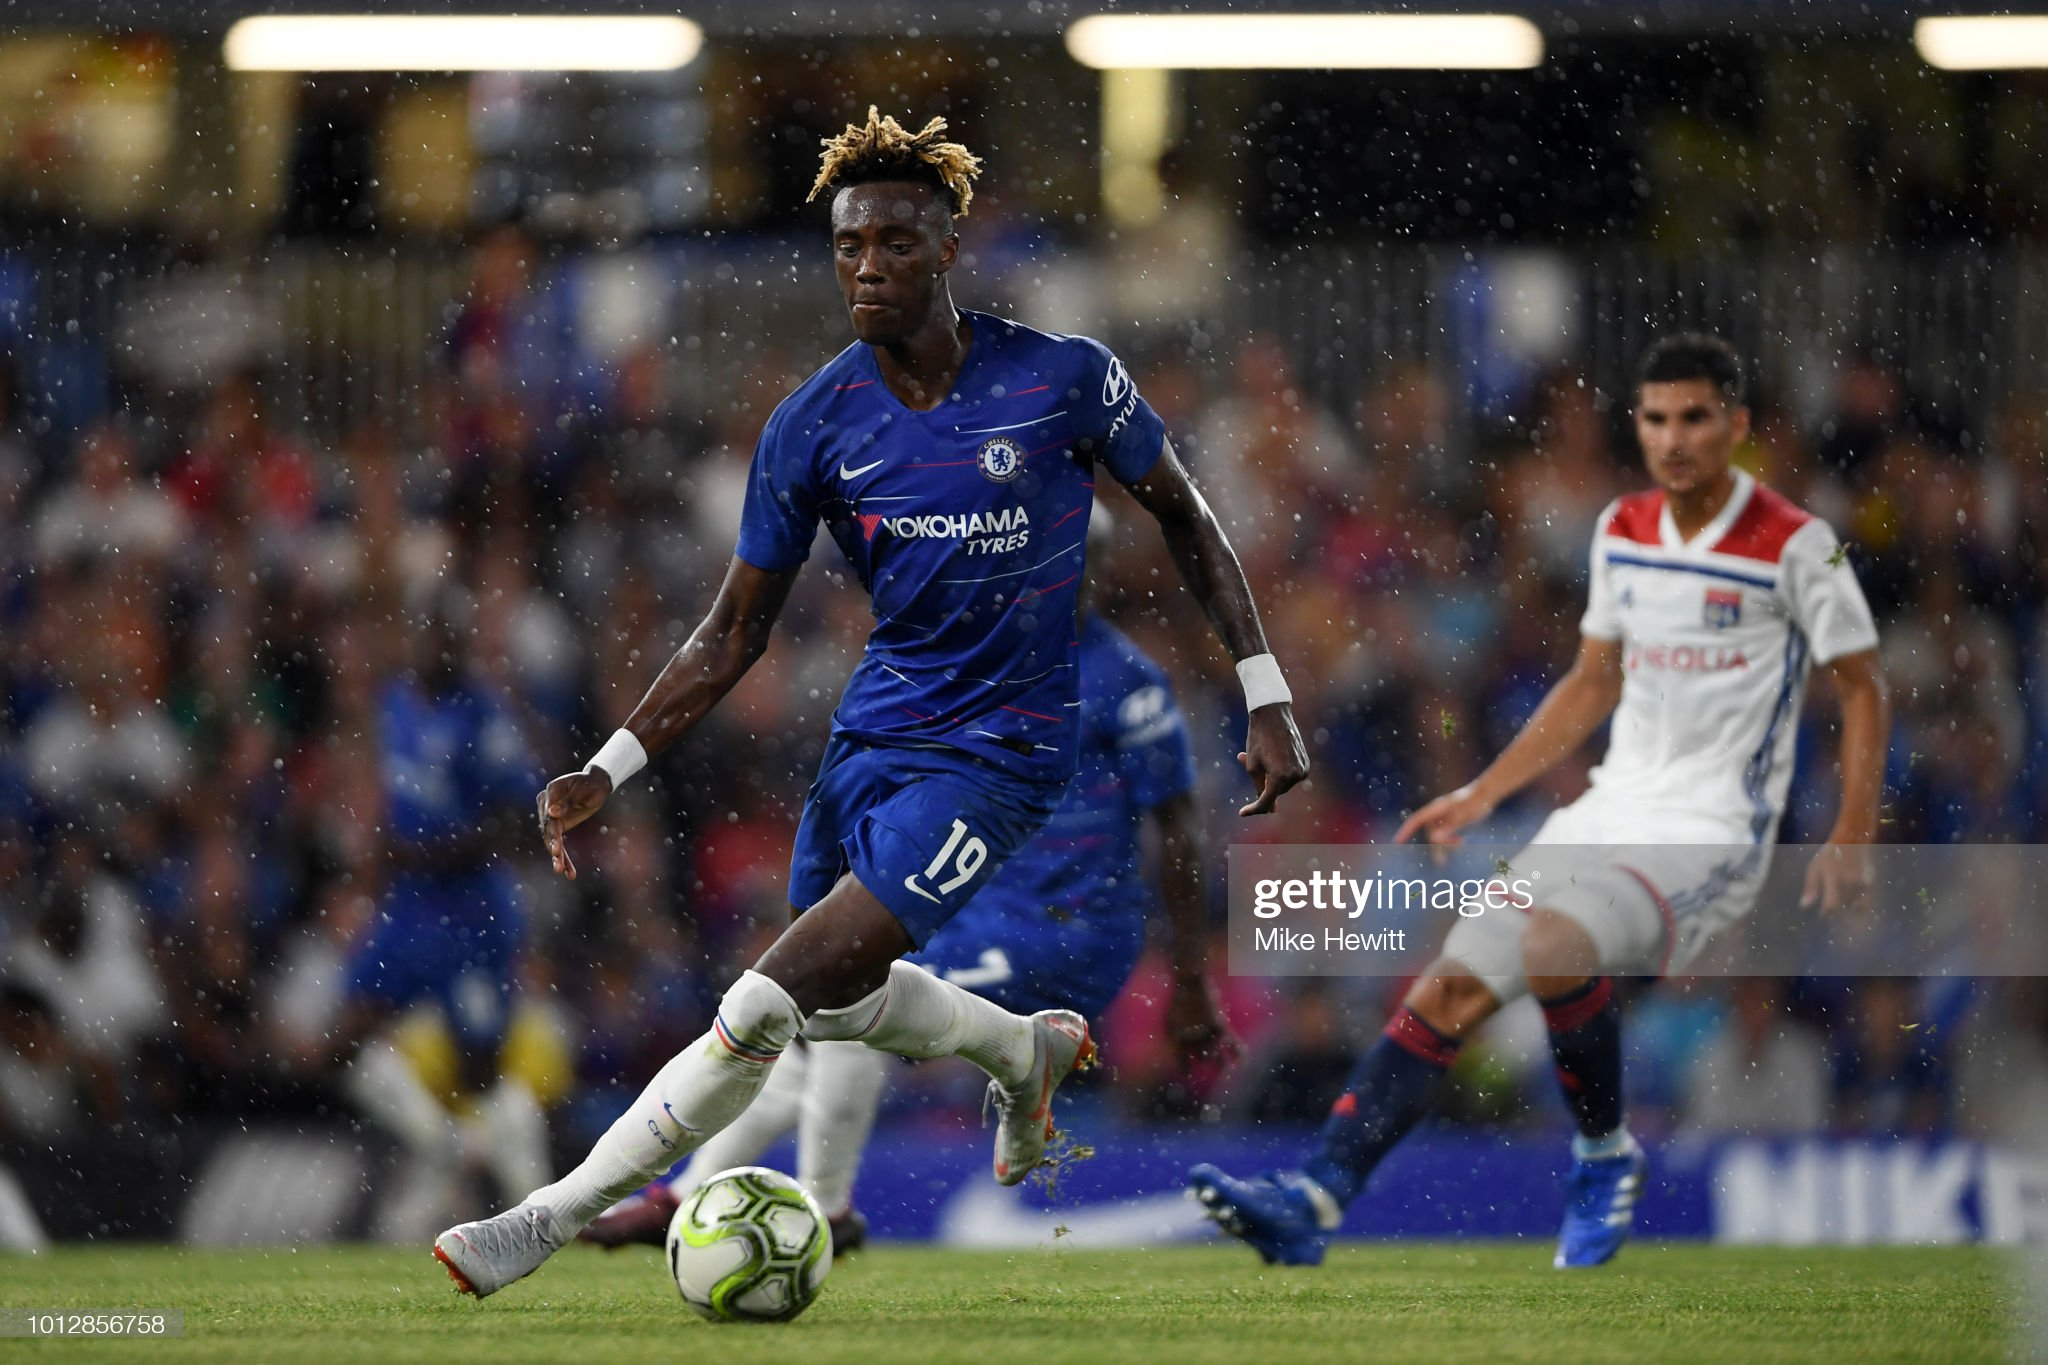 Chelsea v Olympique Lyonnais - Pre-Season Friendly : News Photo